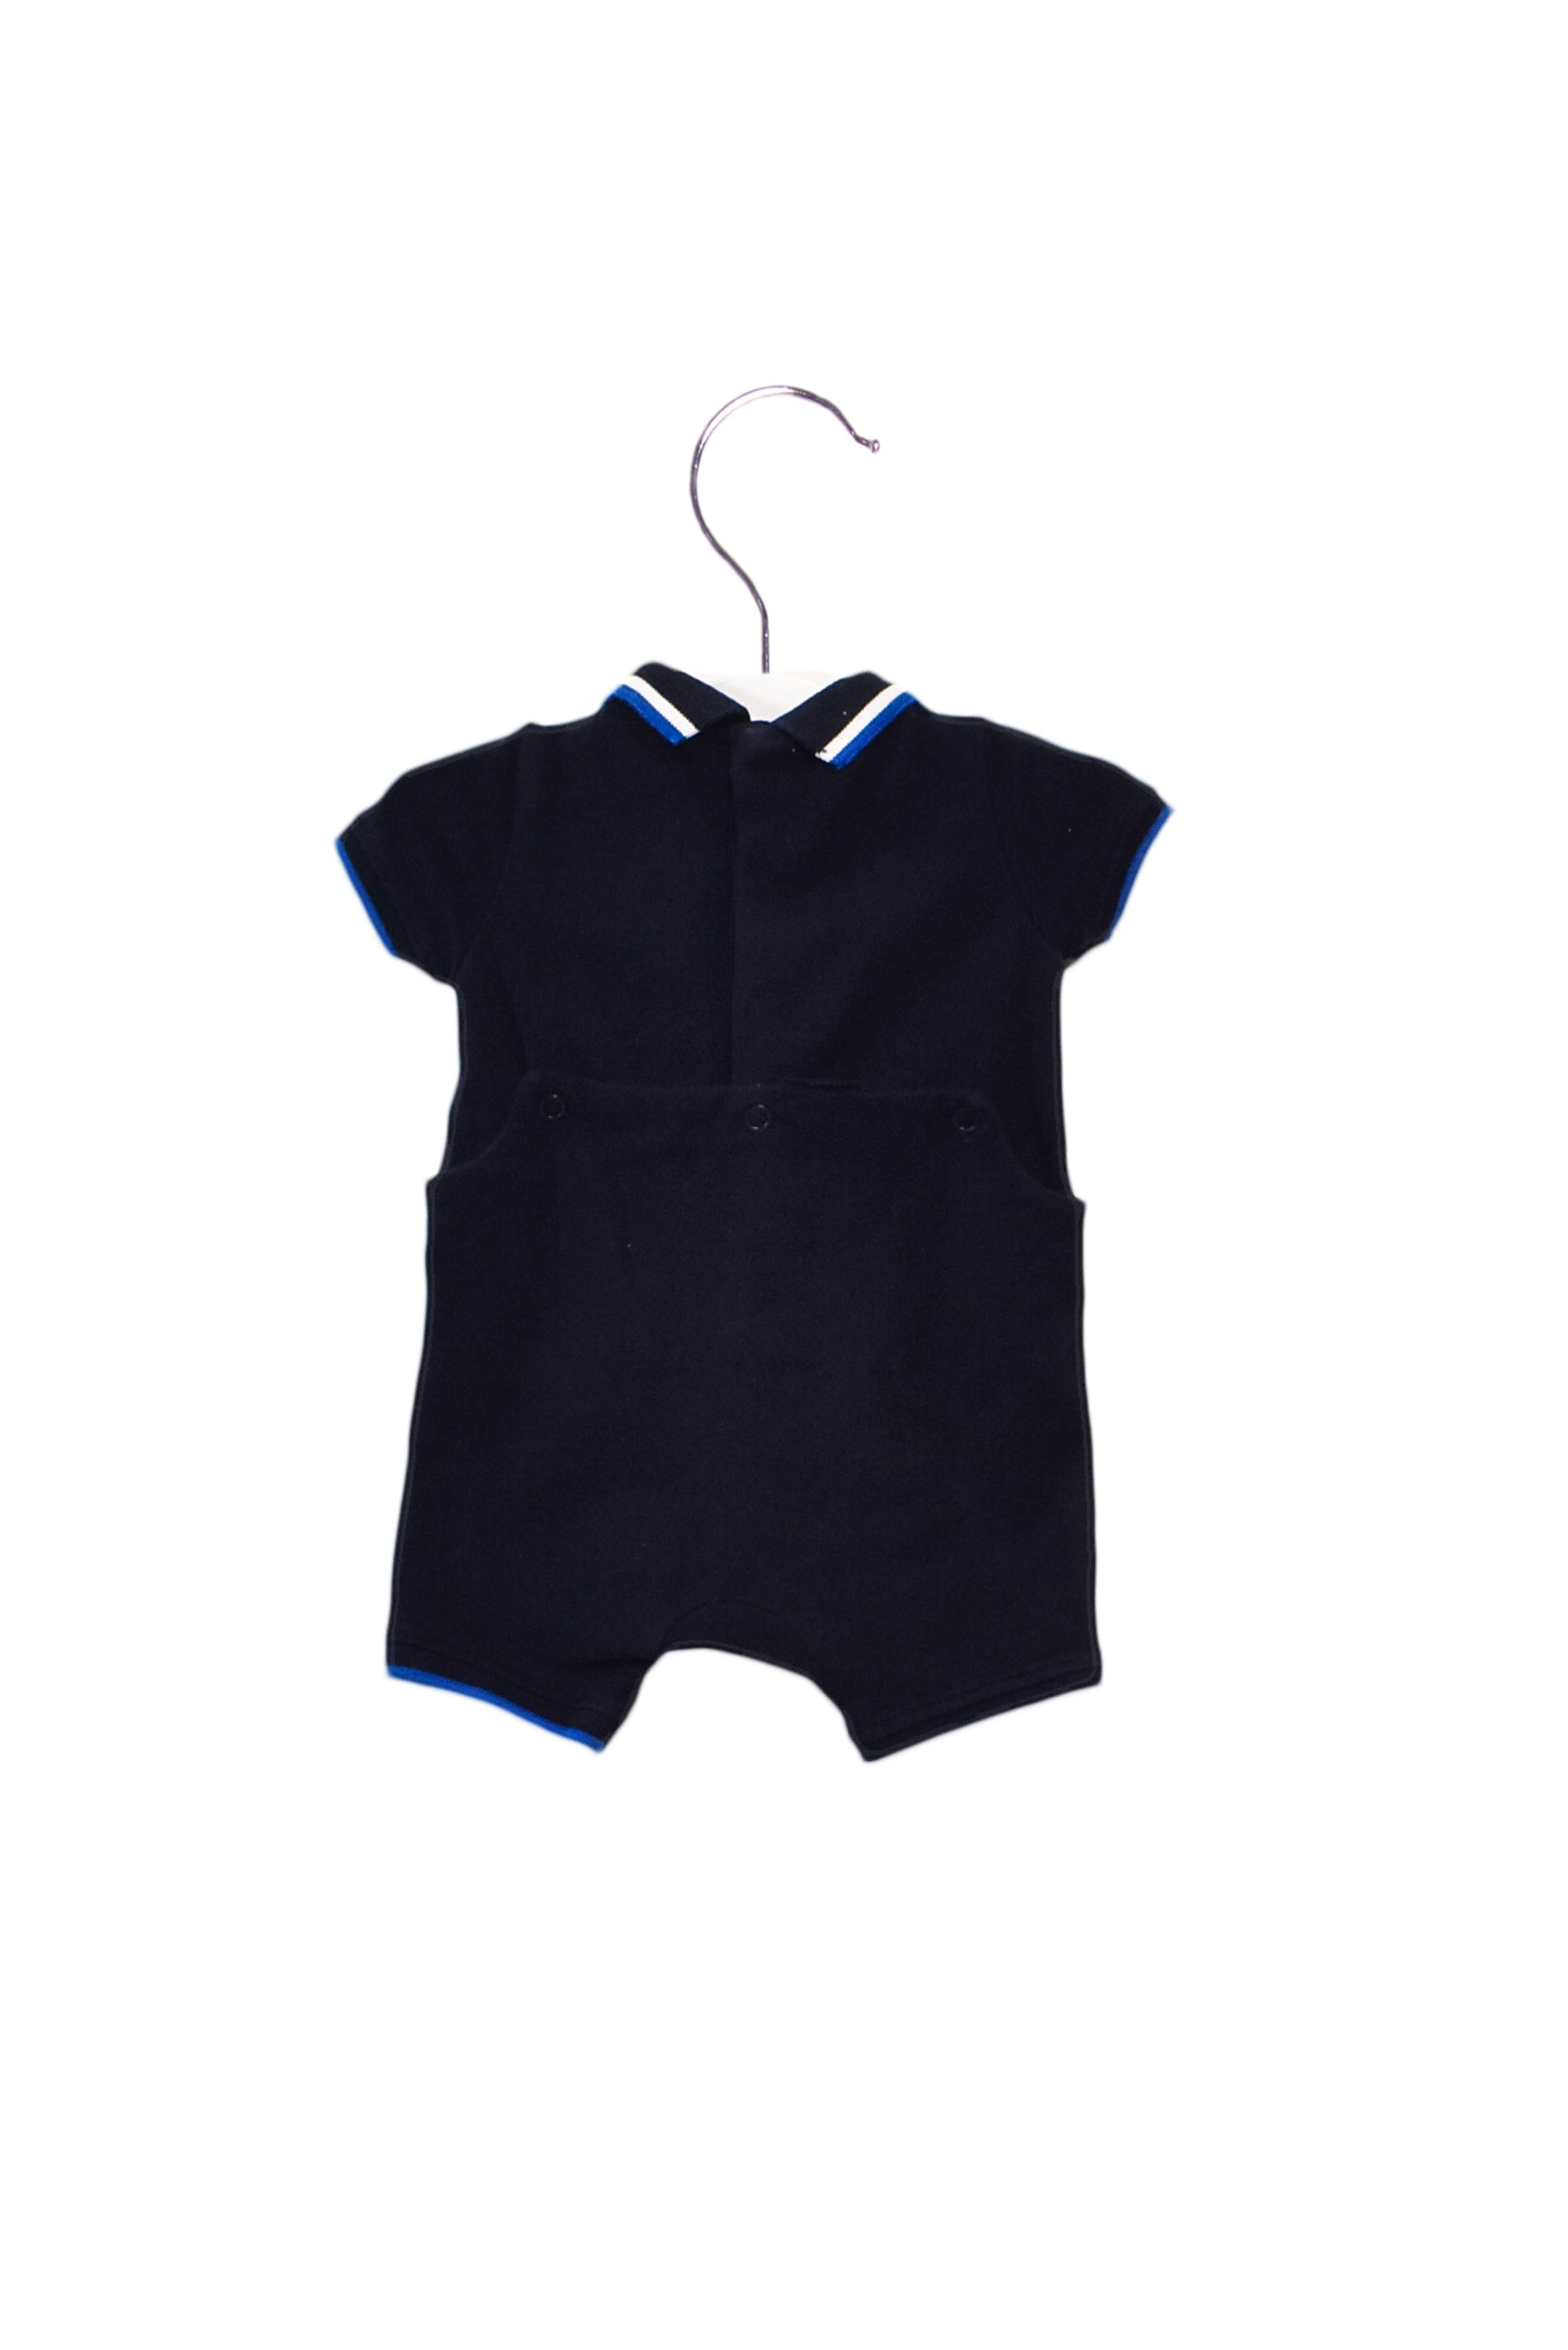 10028373 Jacadi Baby~Jumpsuit 1M at Retykle